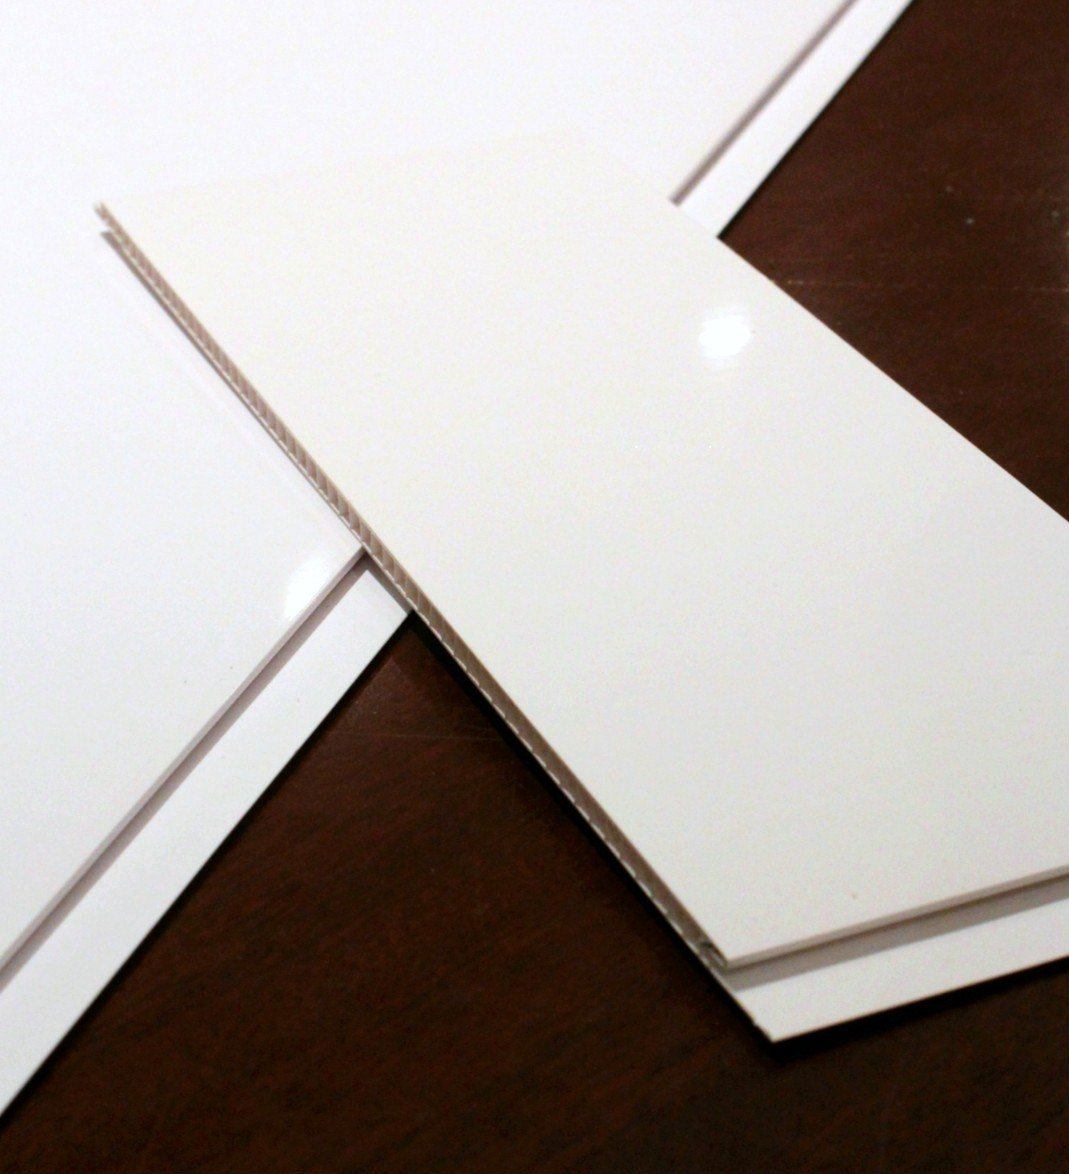 The Cladding Store Gloss White Bathroom PVC Cladding Shower Ceiling Kitchen Wet Wall Panels UPVC Shower Panels (4 Pack)